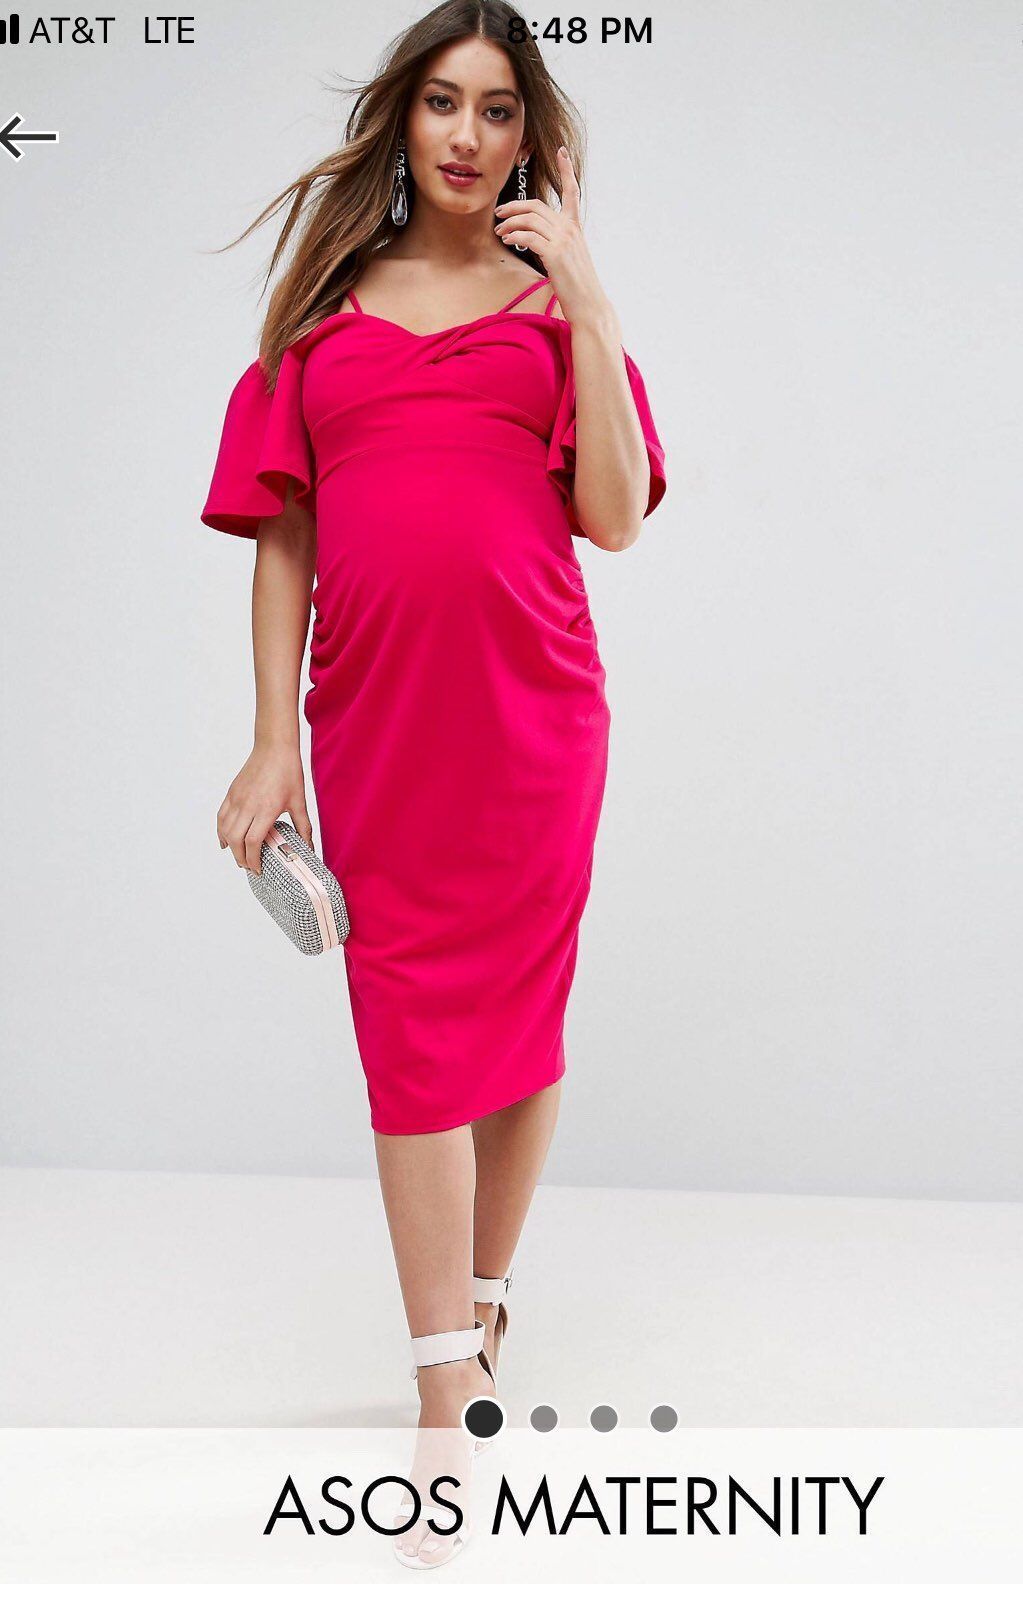 Asos maternity dress mercari buy sell things you love asos maternity dress ombrellifo Image collections